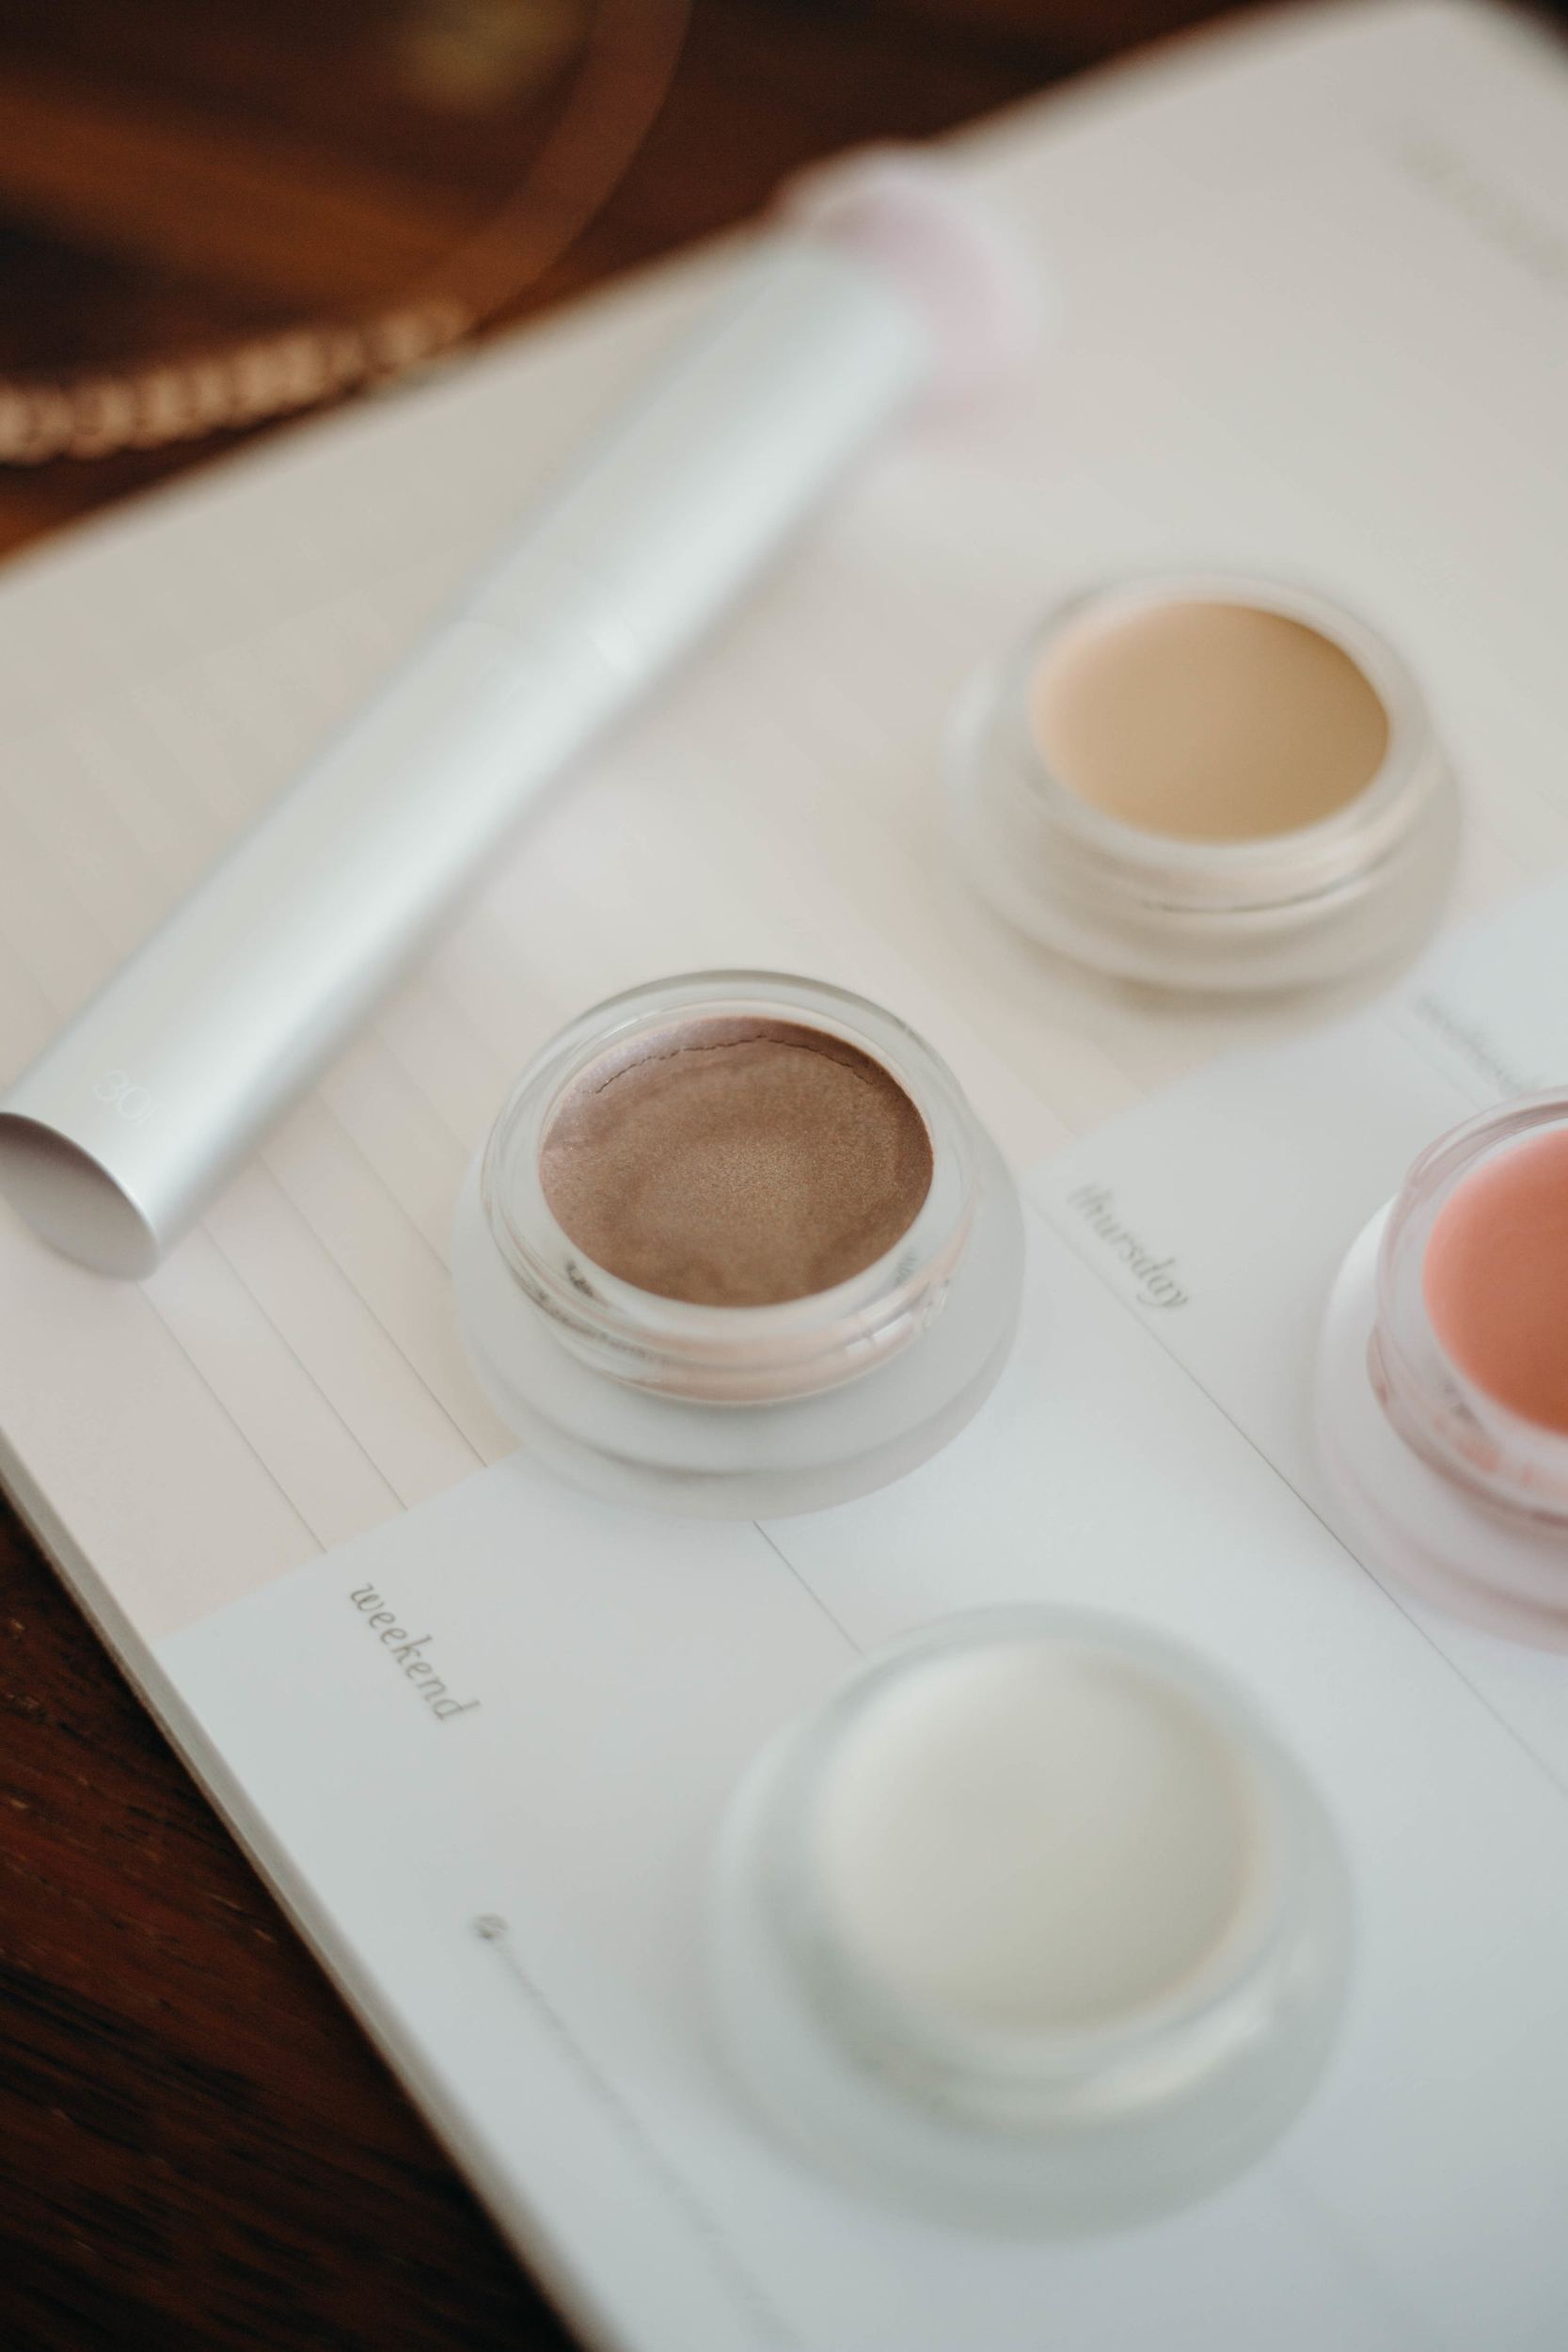 """The Prettiest """"Nothing"""" Shades: RMS Beauty 